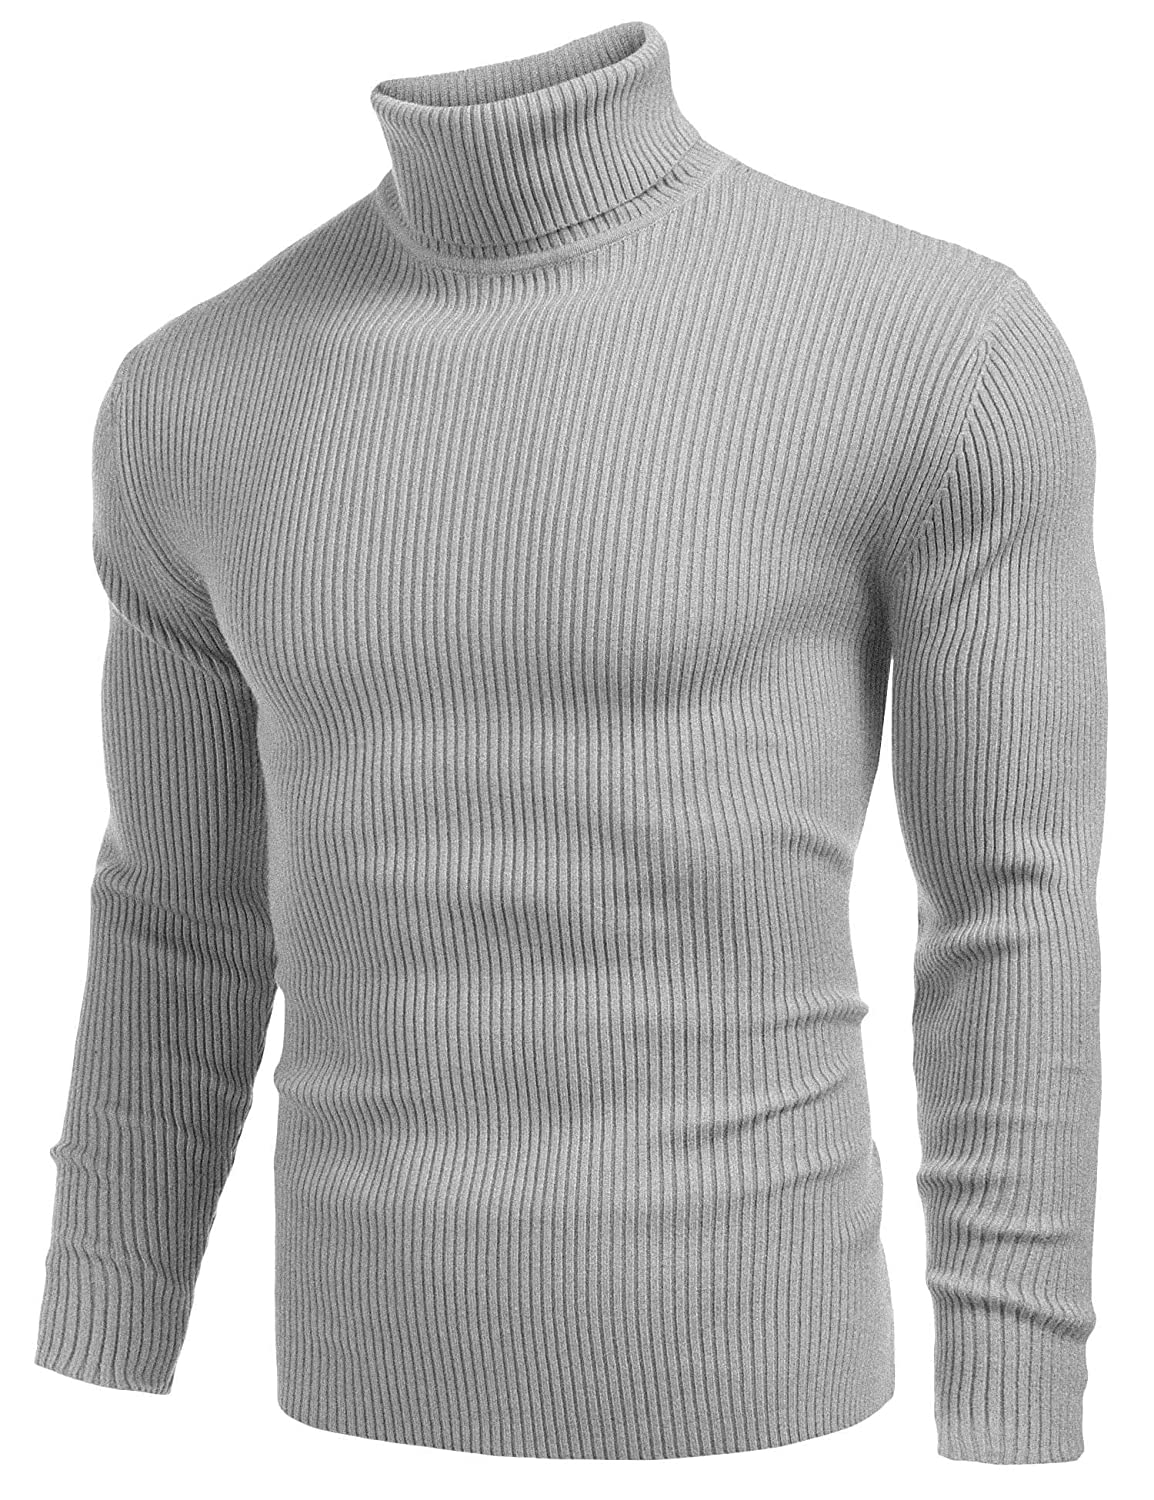 417968c8 High Quality Material : Cotton and polyester, optimal softness and  durability. Mens Knit Turtleneck Sweater:slim fit,thick cotton knit trim, long  sleeve ...